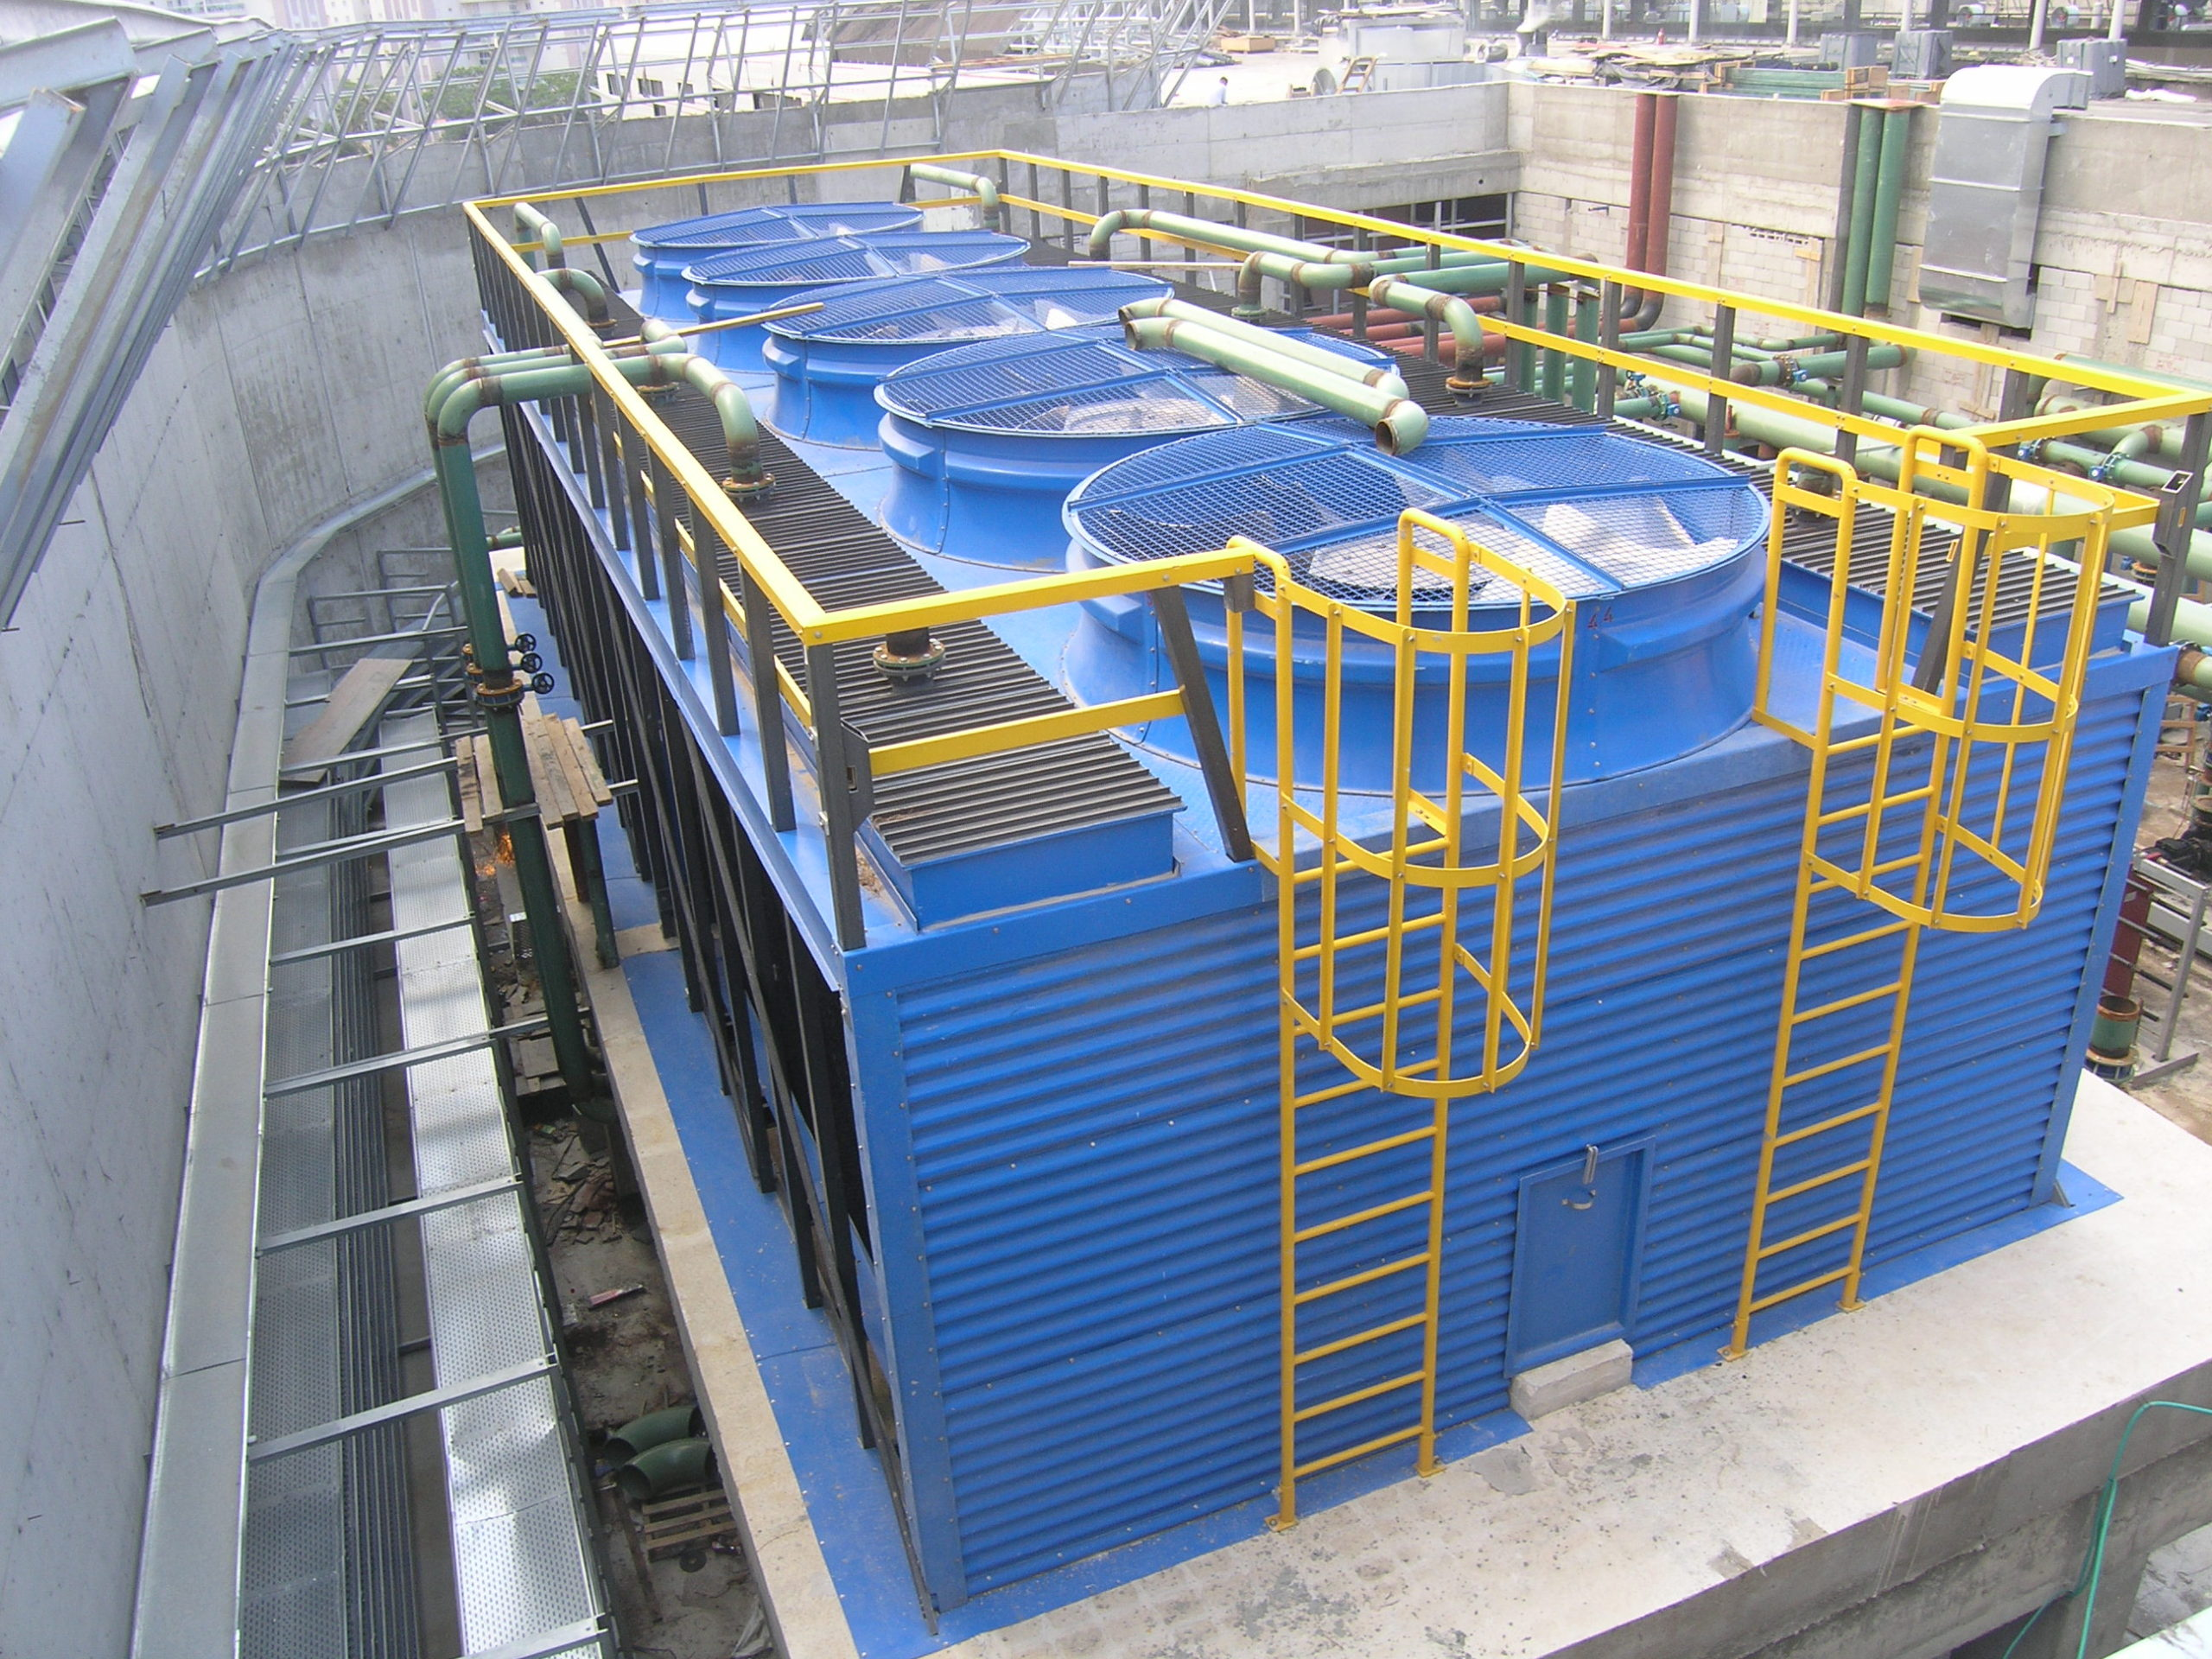 FRPPX: PULTRUDED FRP CROSS FLOW COOLING TOWERS